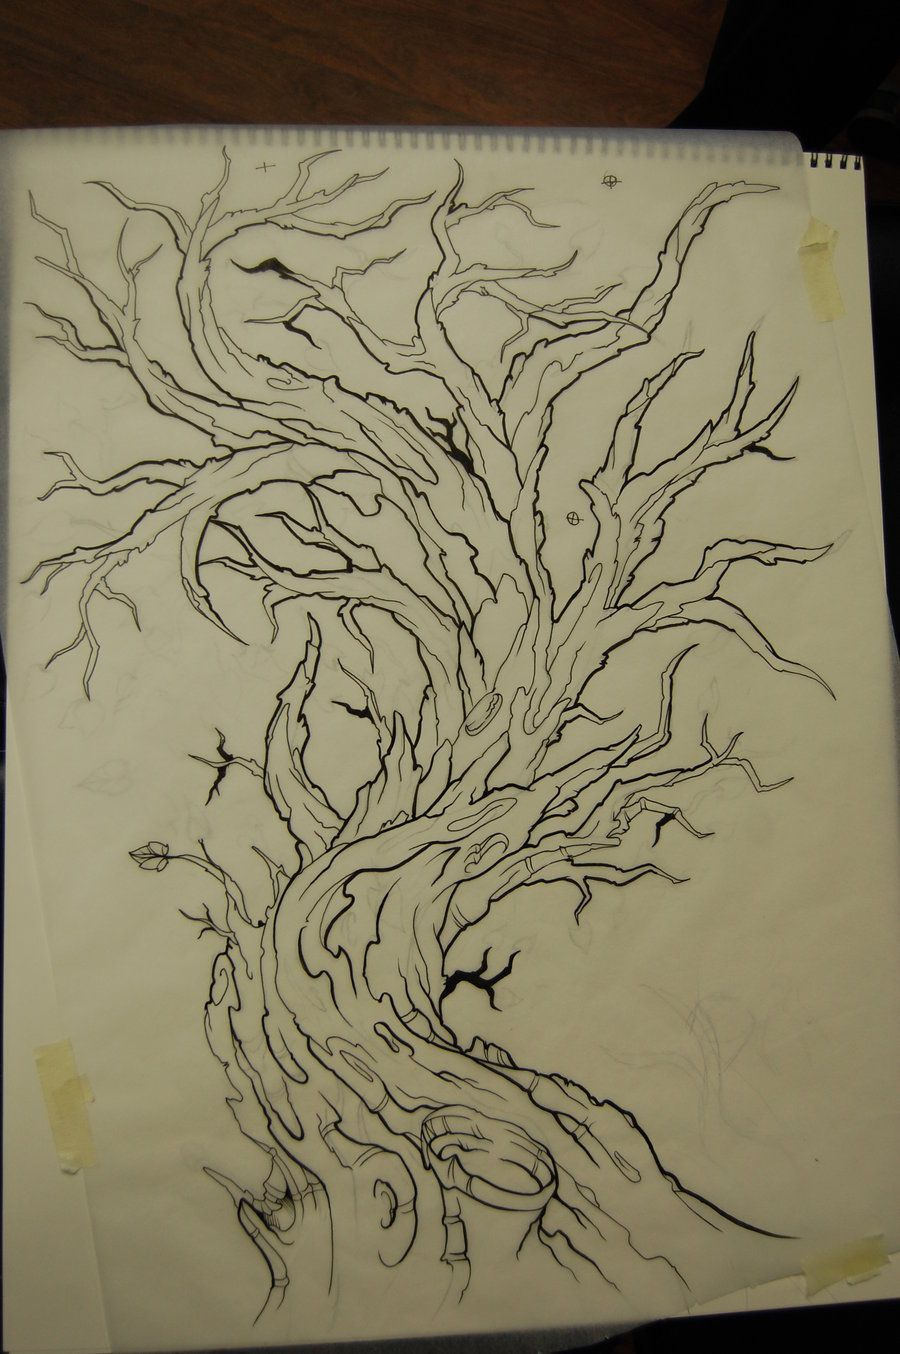 Very Old Tree Tattoo Image Tattooing Designs Tattoo Ideas And Designs